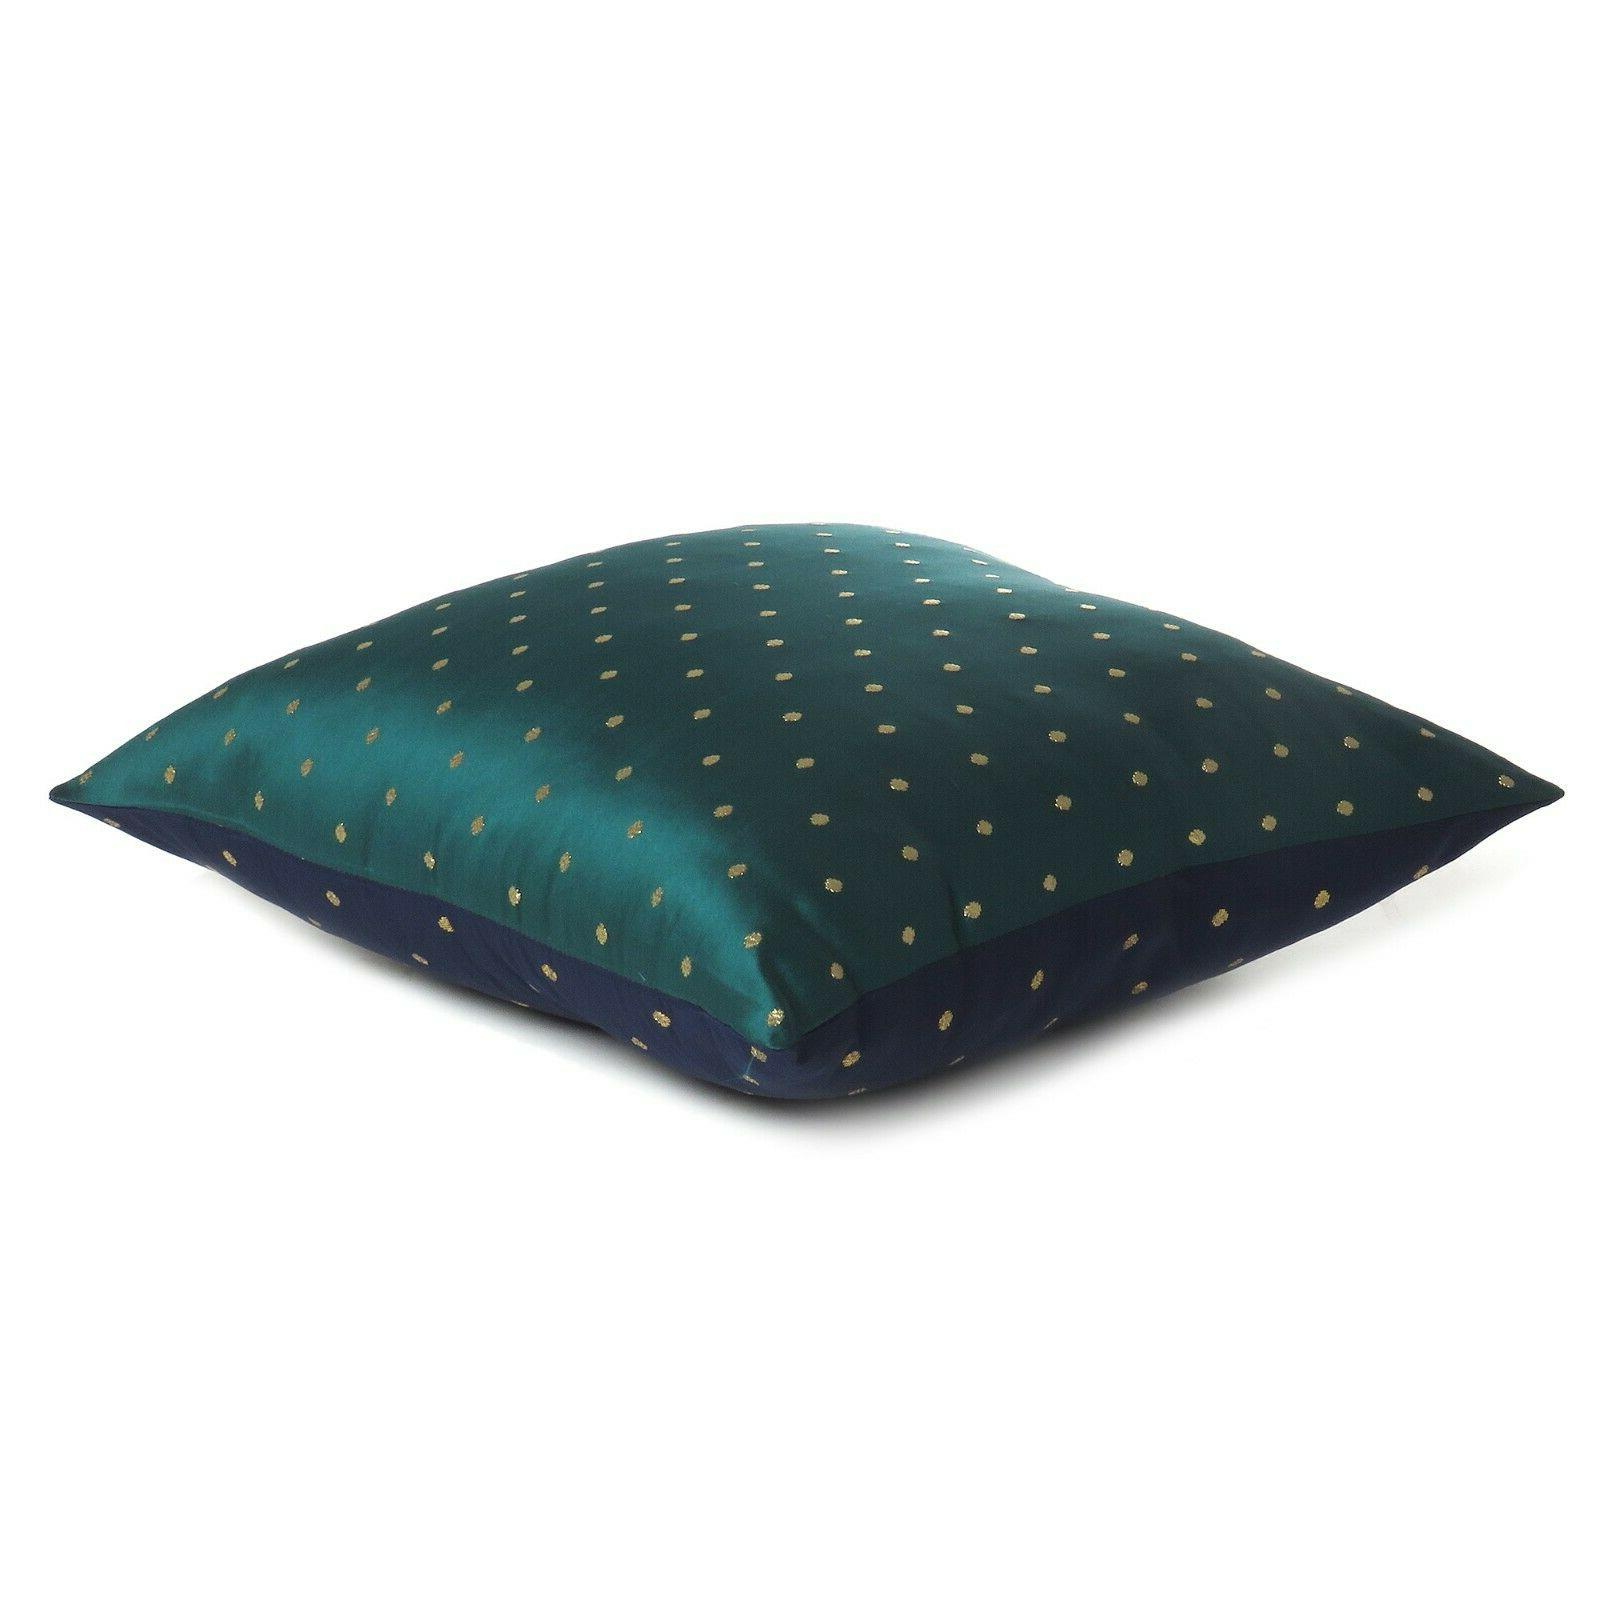 Pillow Bed Room Pillow Reversible for Decor